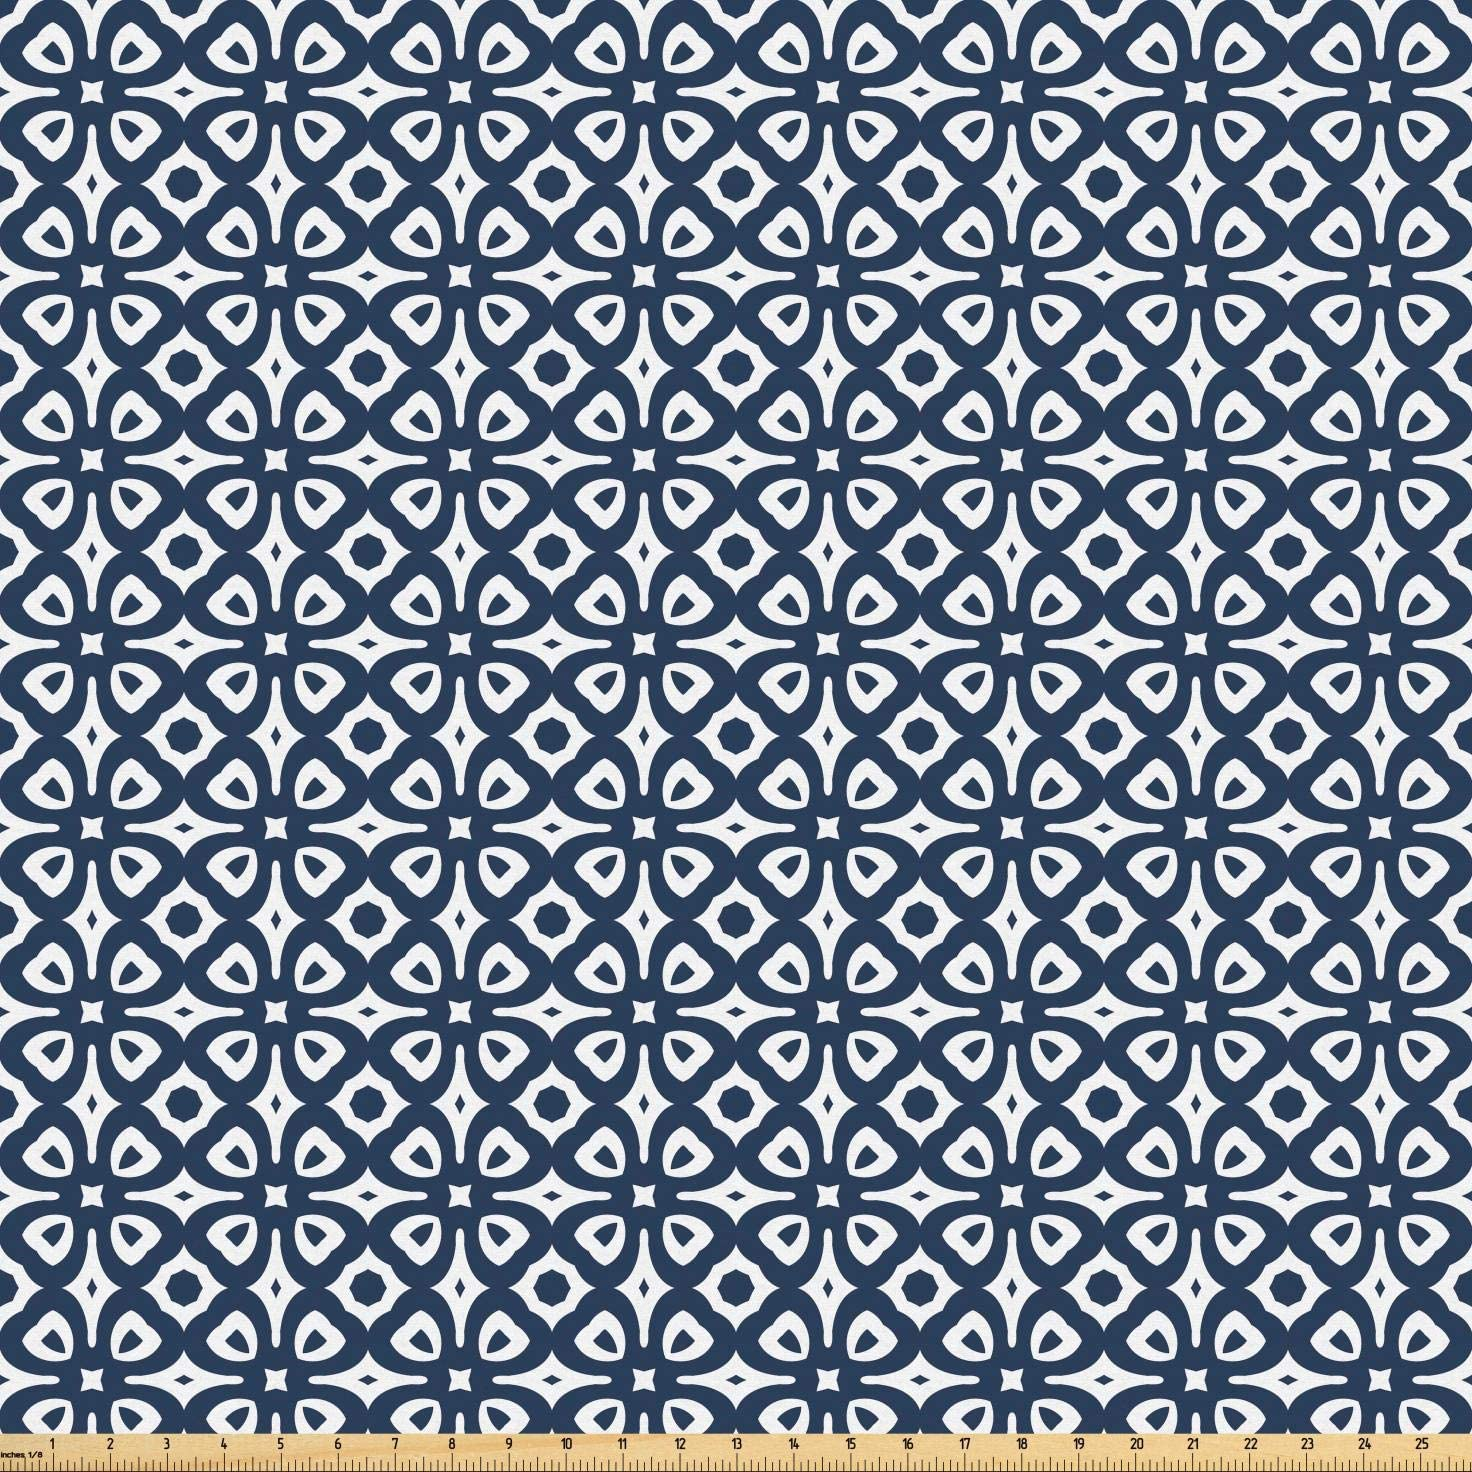 Lunarable Geometric Fabric by The Yard, Vintage Geometric Pattern with Continuous Mosaic Tiles Illustration, Microfiber Fabric for Arts and Crafts Textiles & Decor, 1 Yard, Night Blue and White